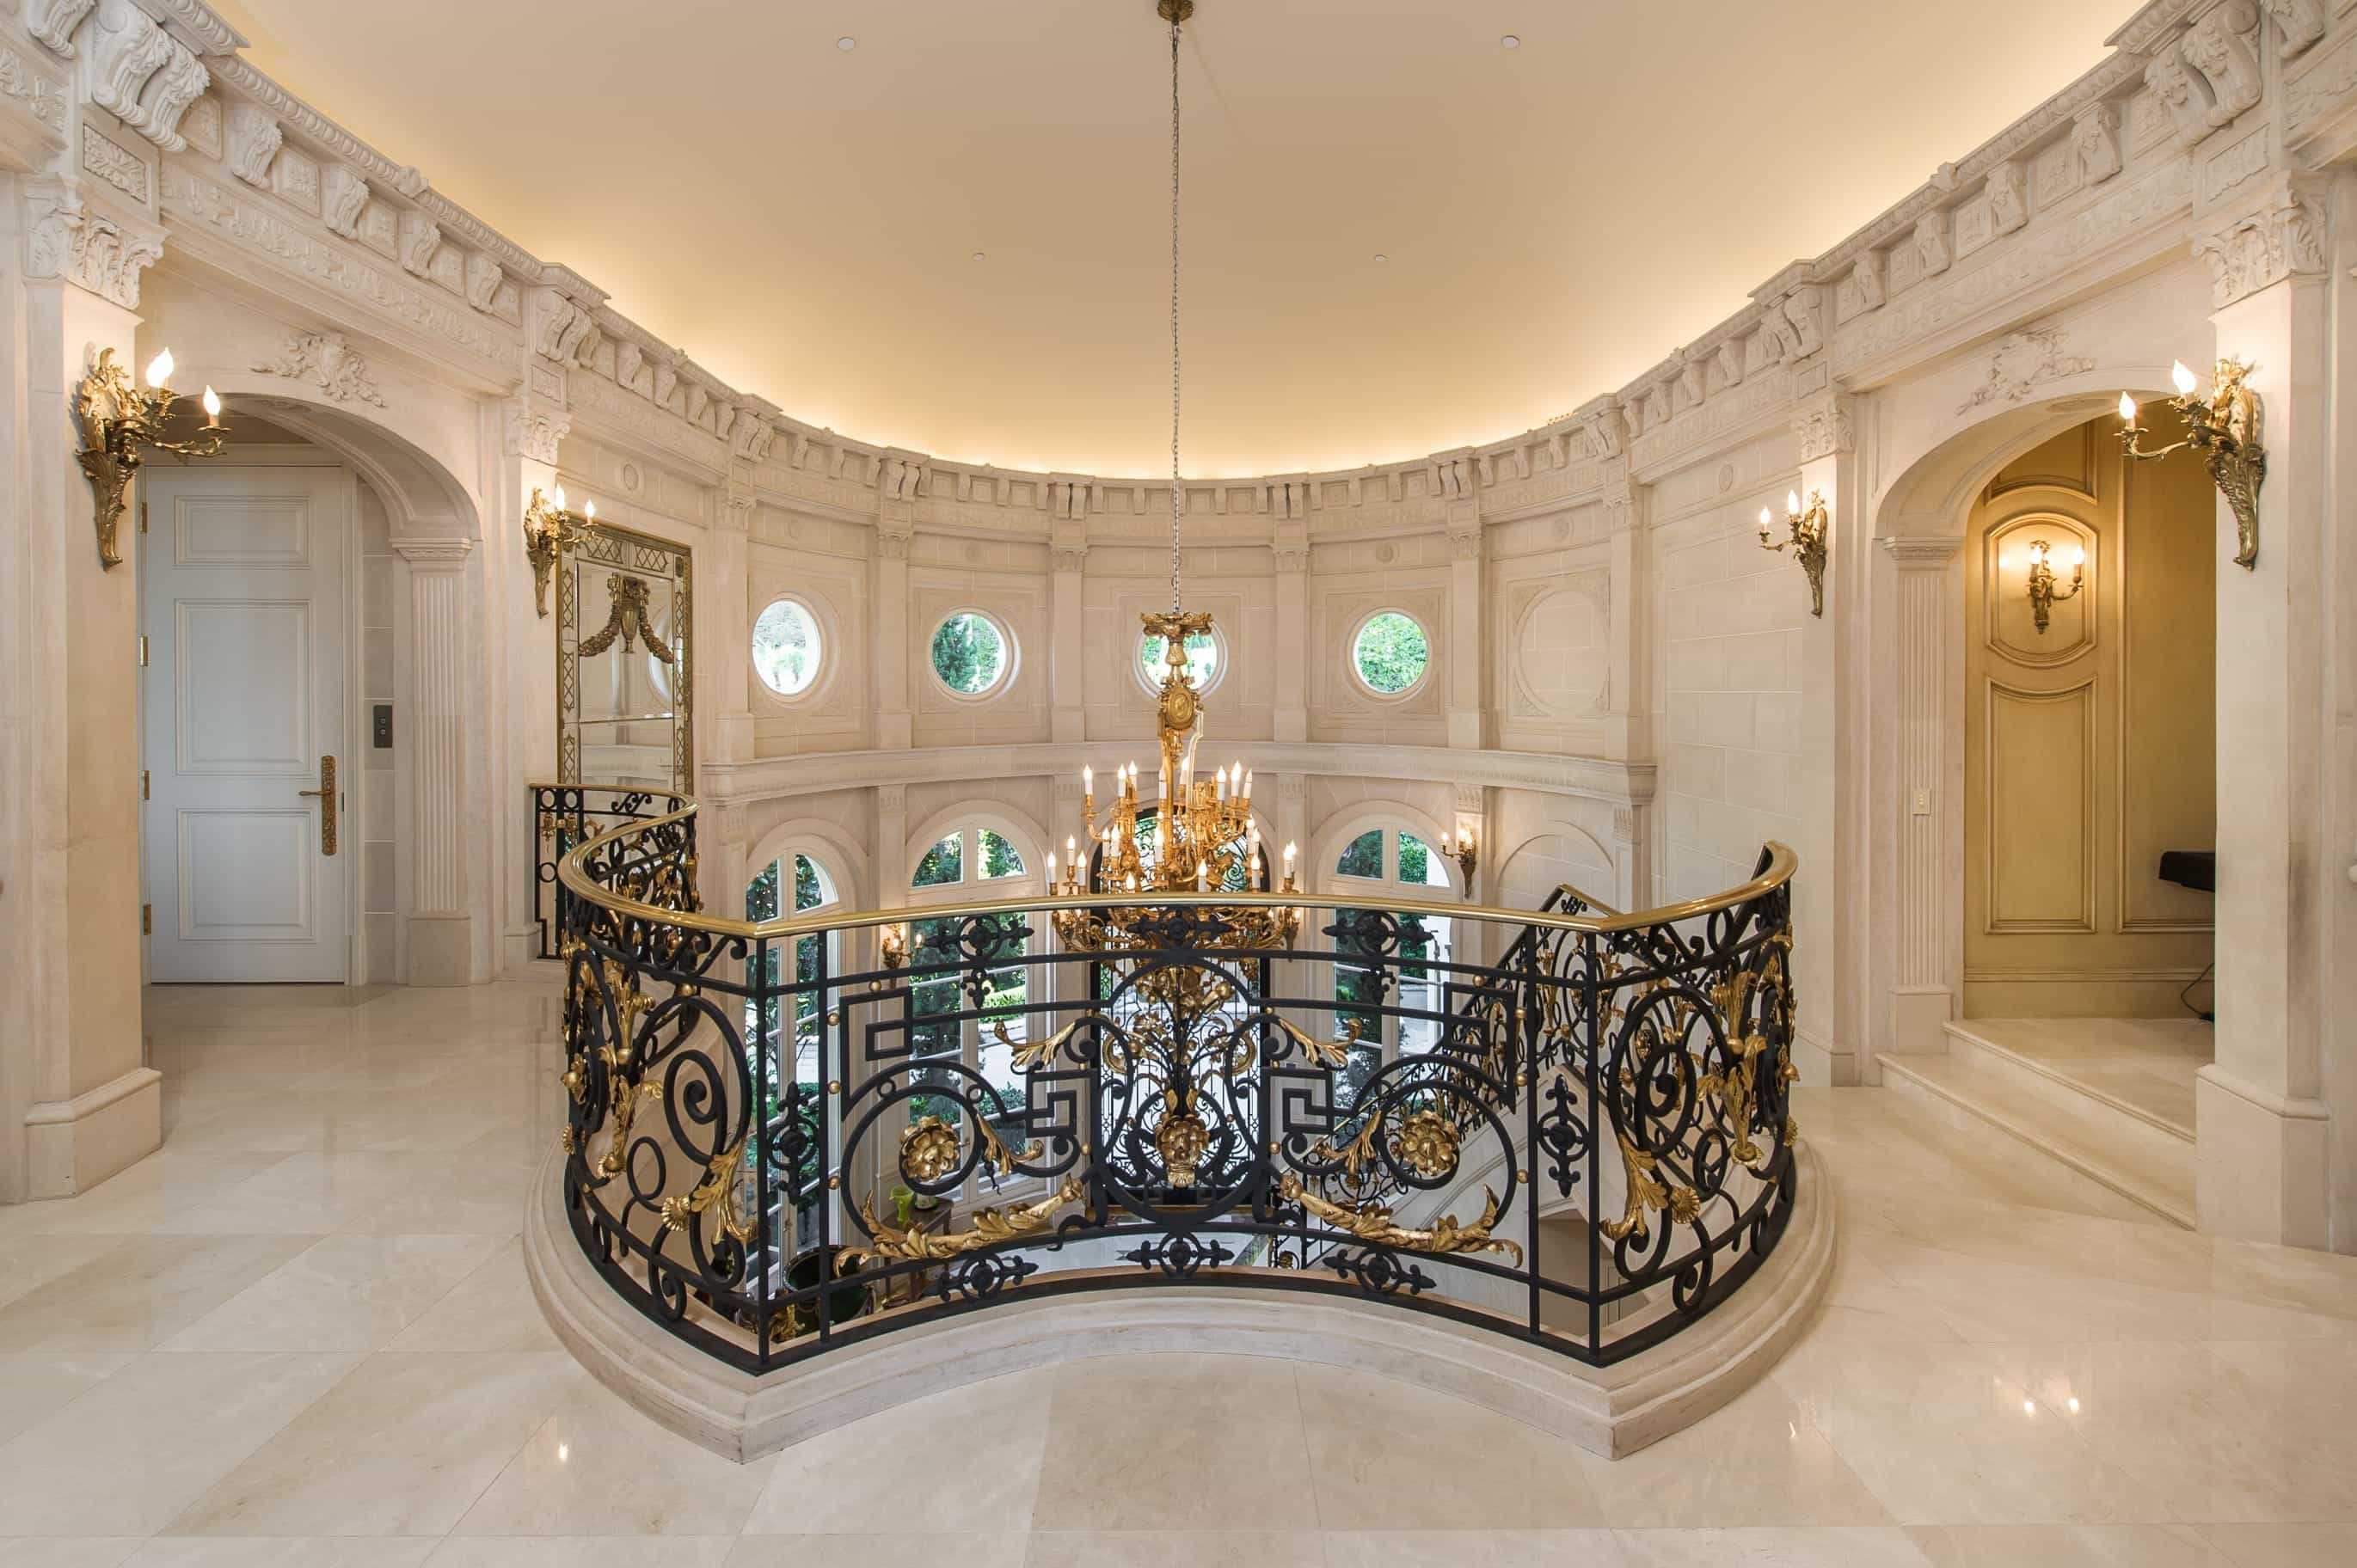 Stunning Classic European Interior With Marble Flooring (Photo 3 of 13)